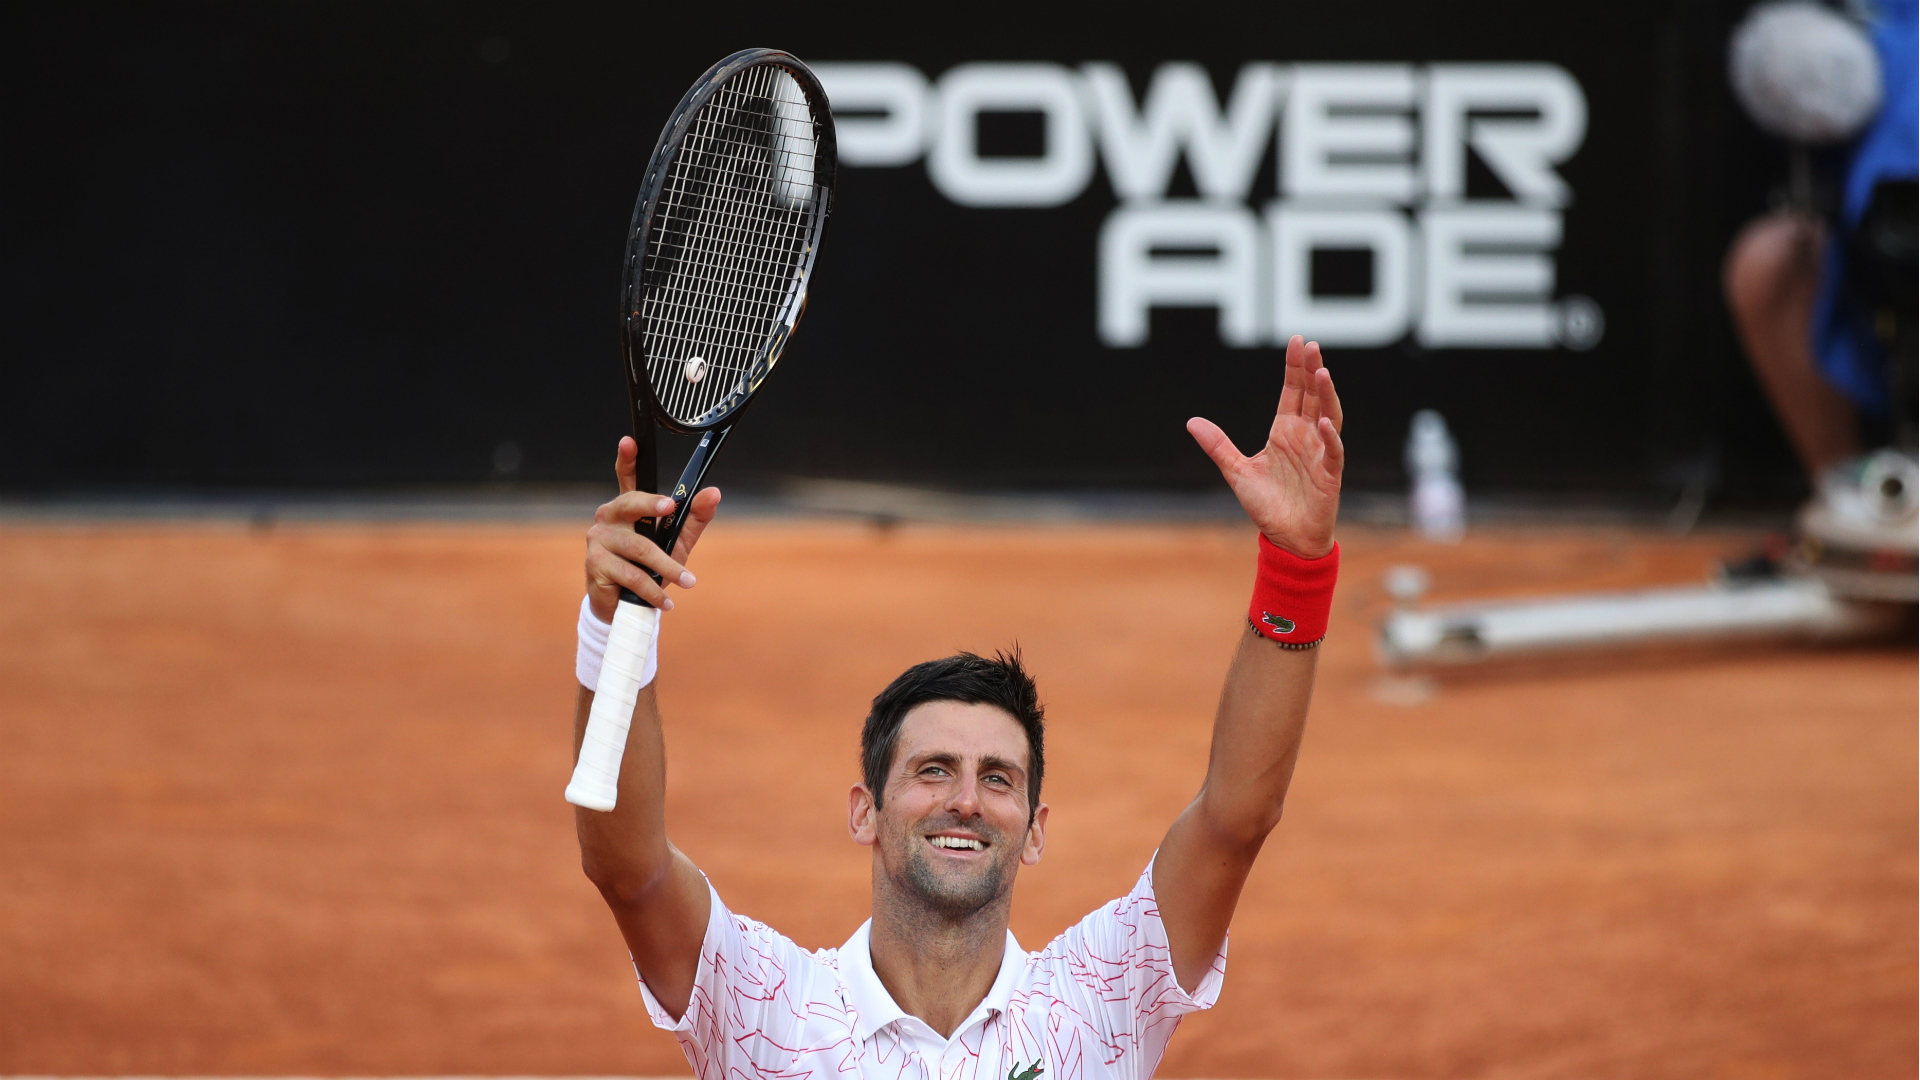 Djokovic: Not facing Nadal in Rome final will be strange